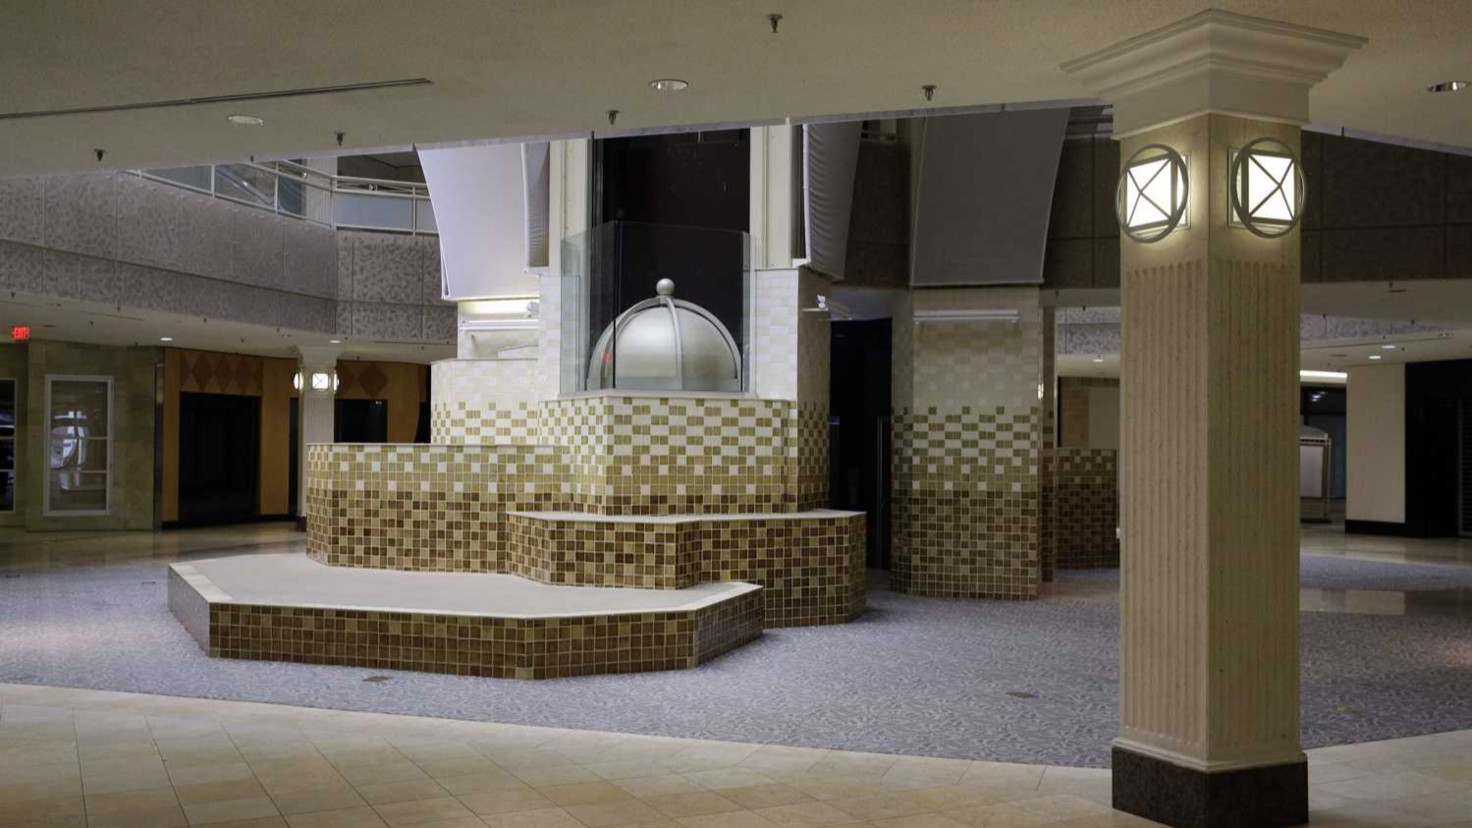 Dead malls: Is this the end for shopping centres?